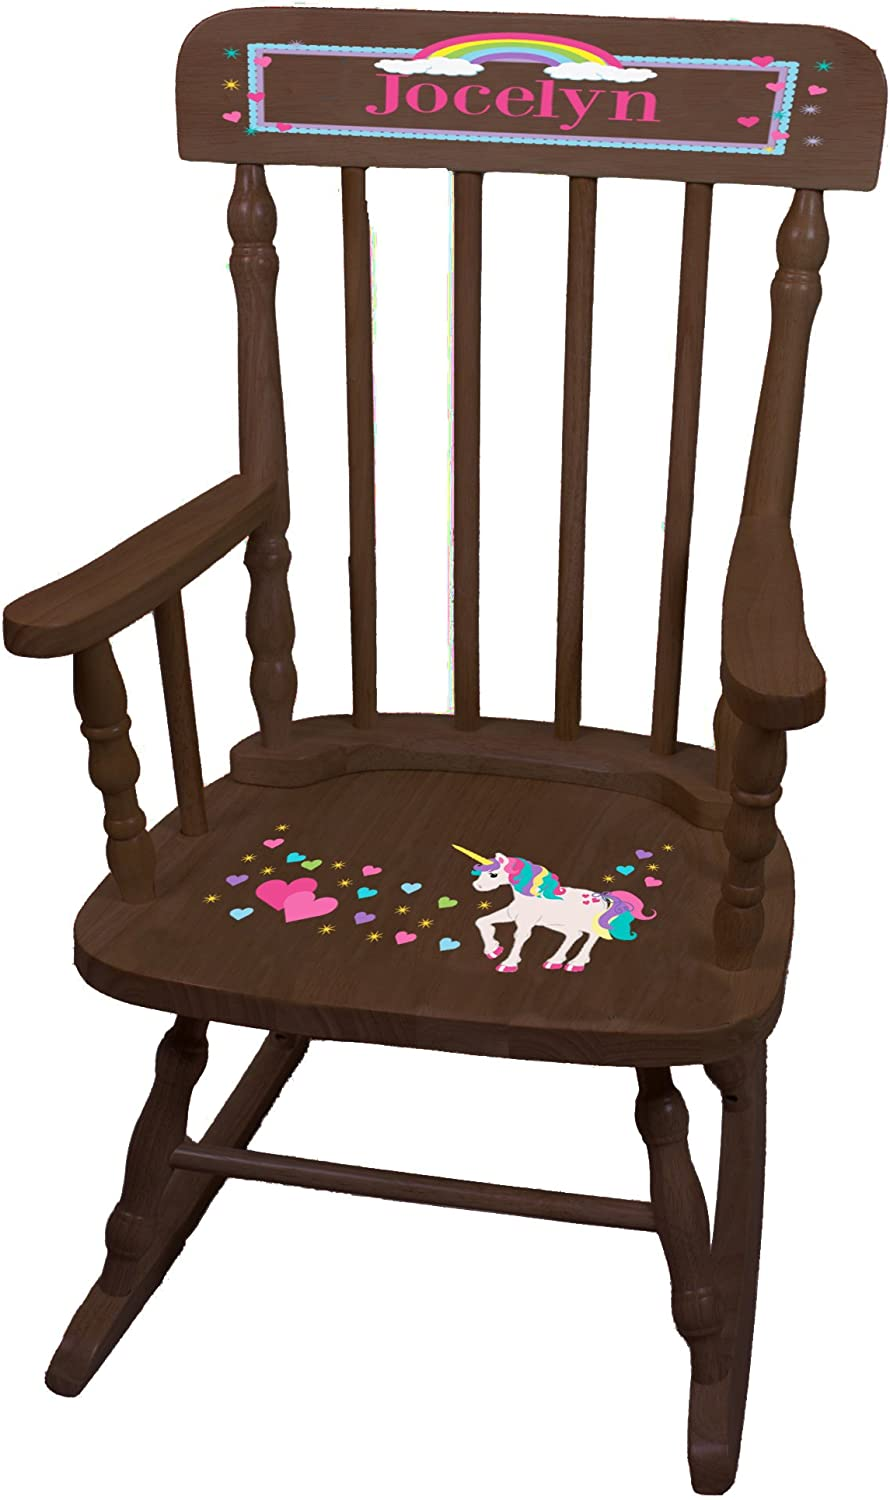 Personalized Unicorn Espresso Childrens Chair Rocking Special price for a limited time Oklahoma City Mall